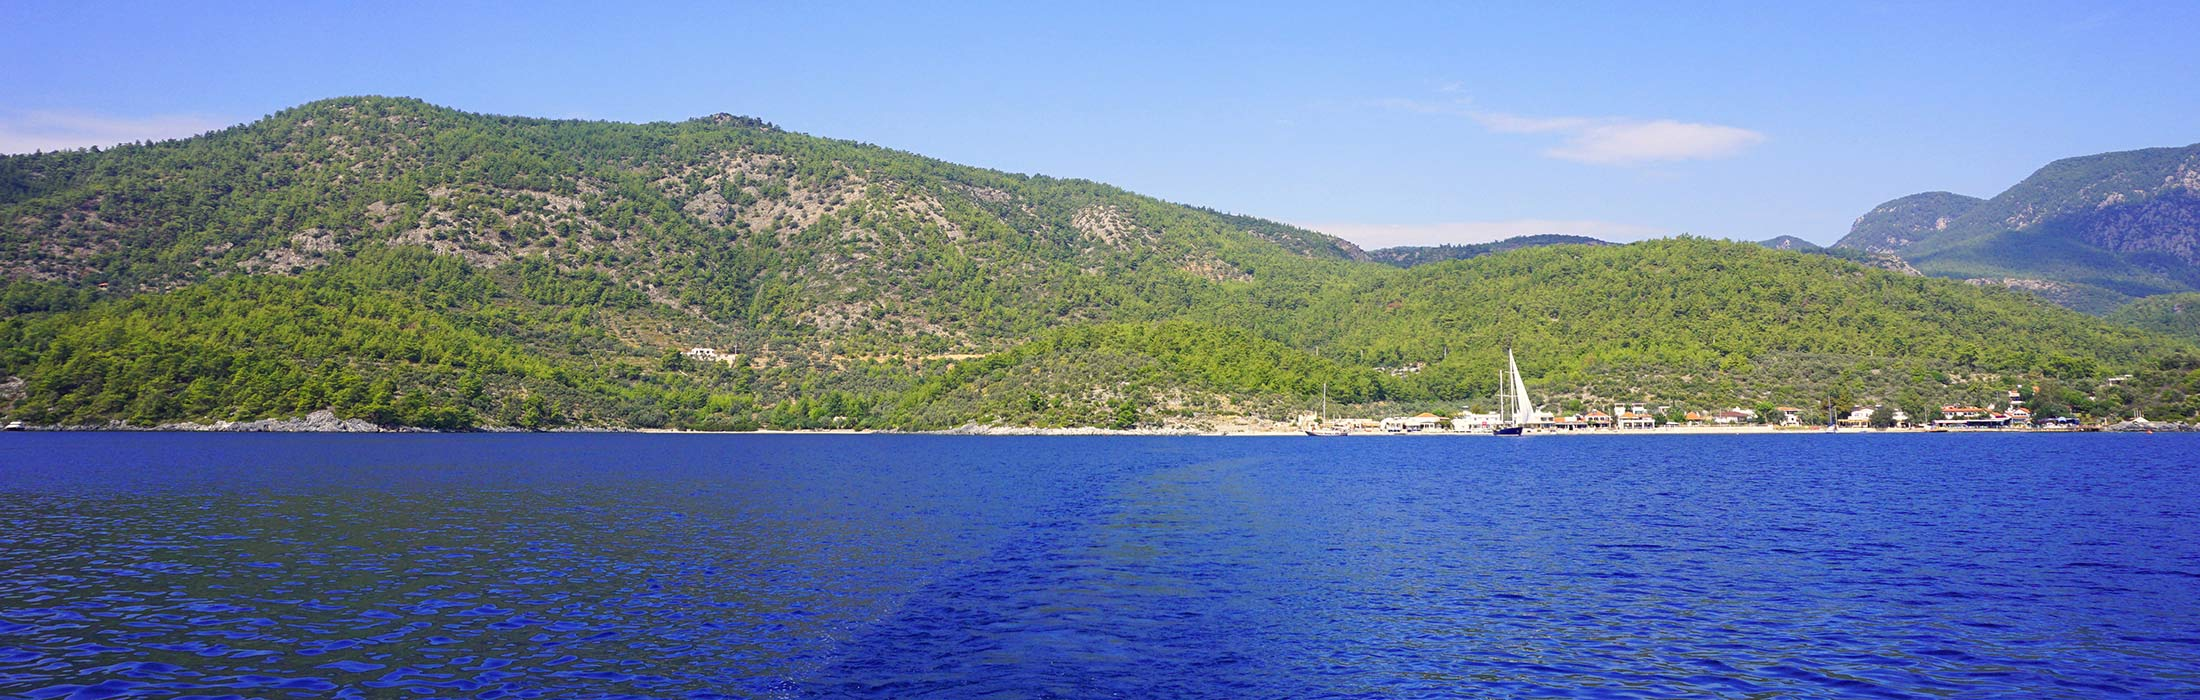 top-yacht-charter-destinations-mediterranean-turkey-bodrum-main-slider-4.jpg